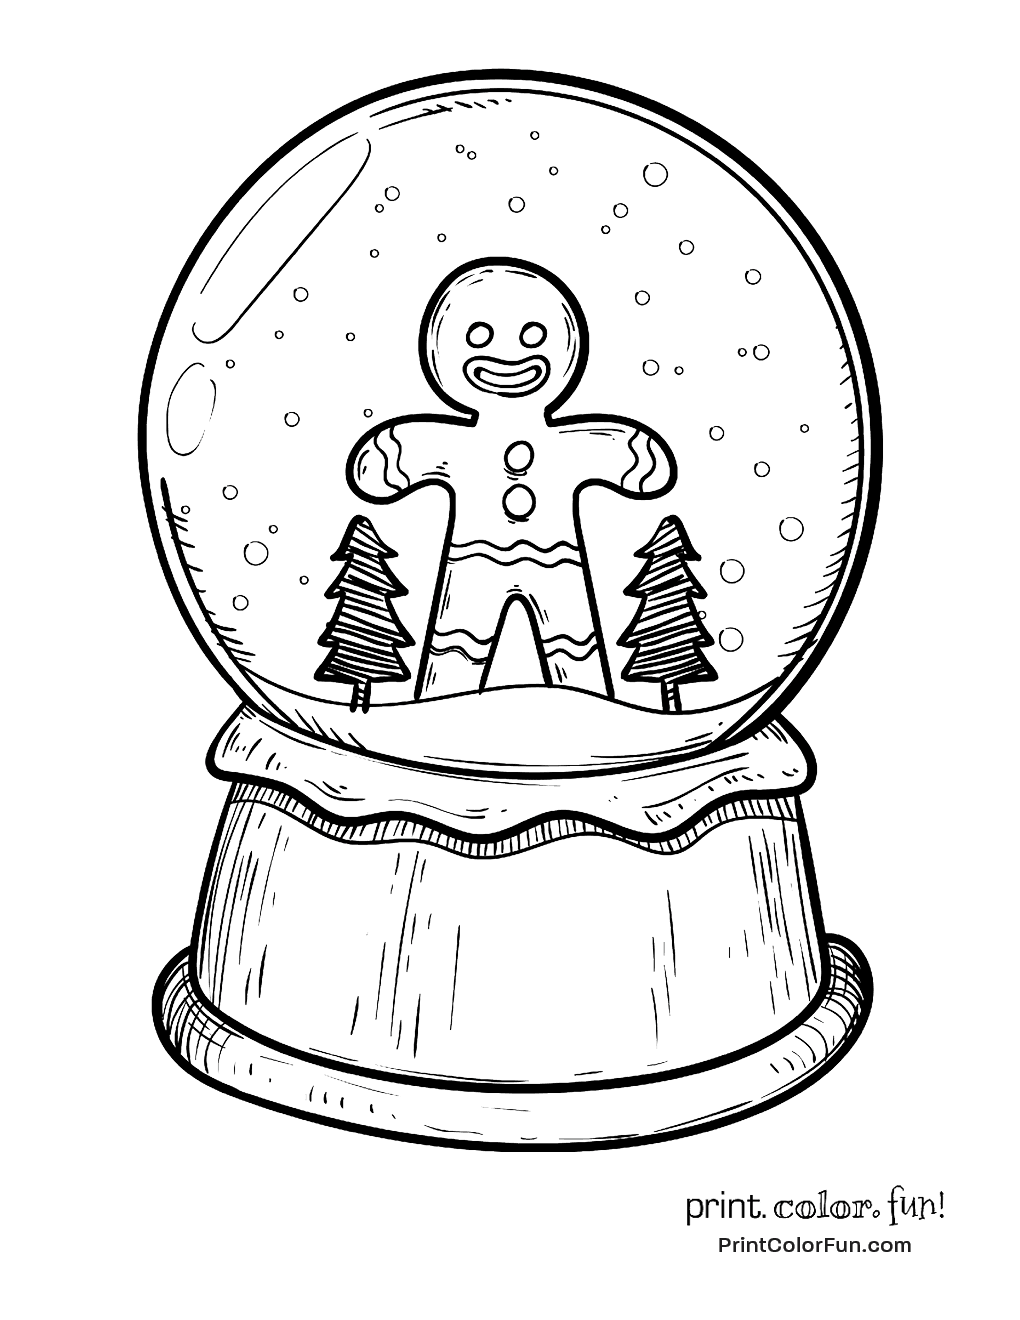 Christmas snow globe with gingerbread man coloring page